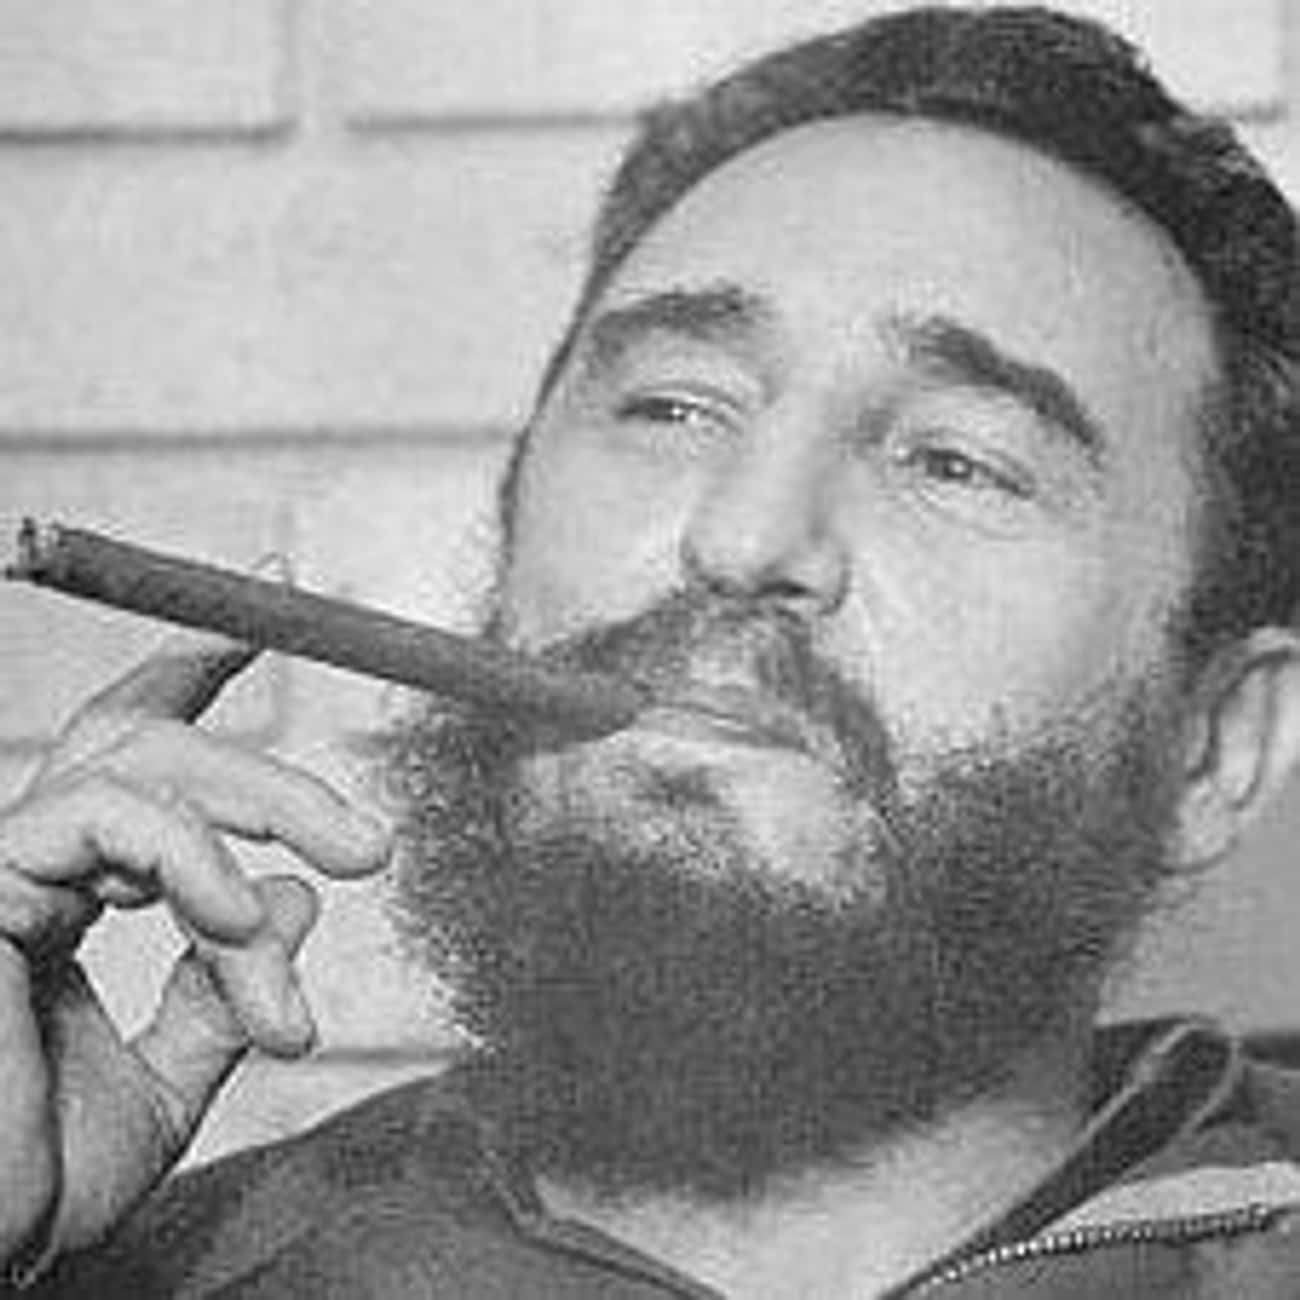 Fidel Castro was obsessed with milk, ice cream, and genetically modified Cuban super cows